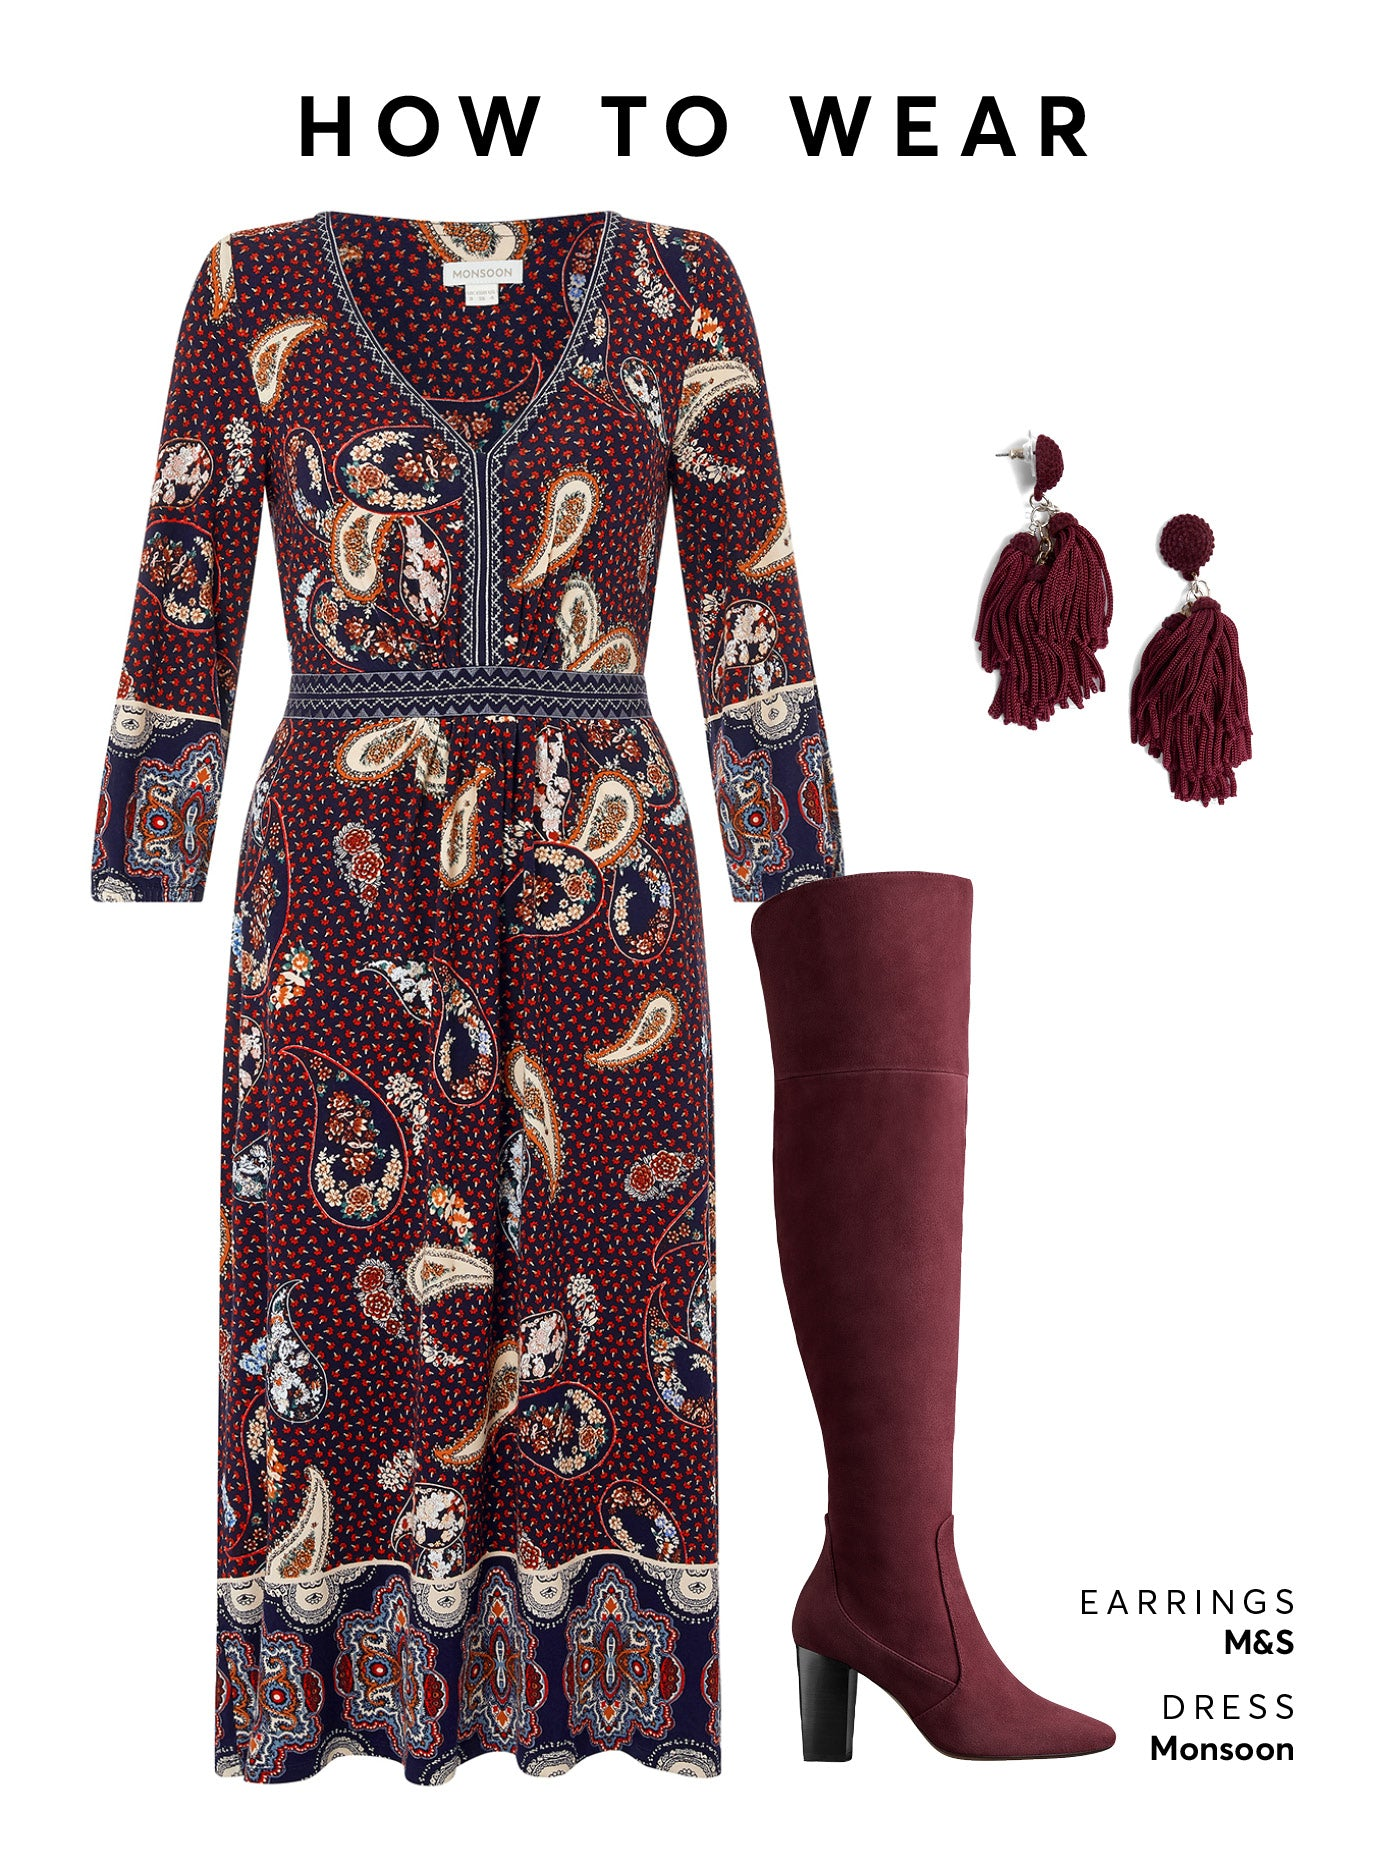 Wear the burgundy OTK boot with a floral wrap dress or skinny jeans.